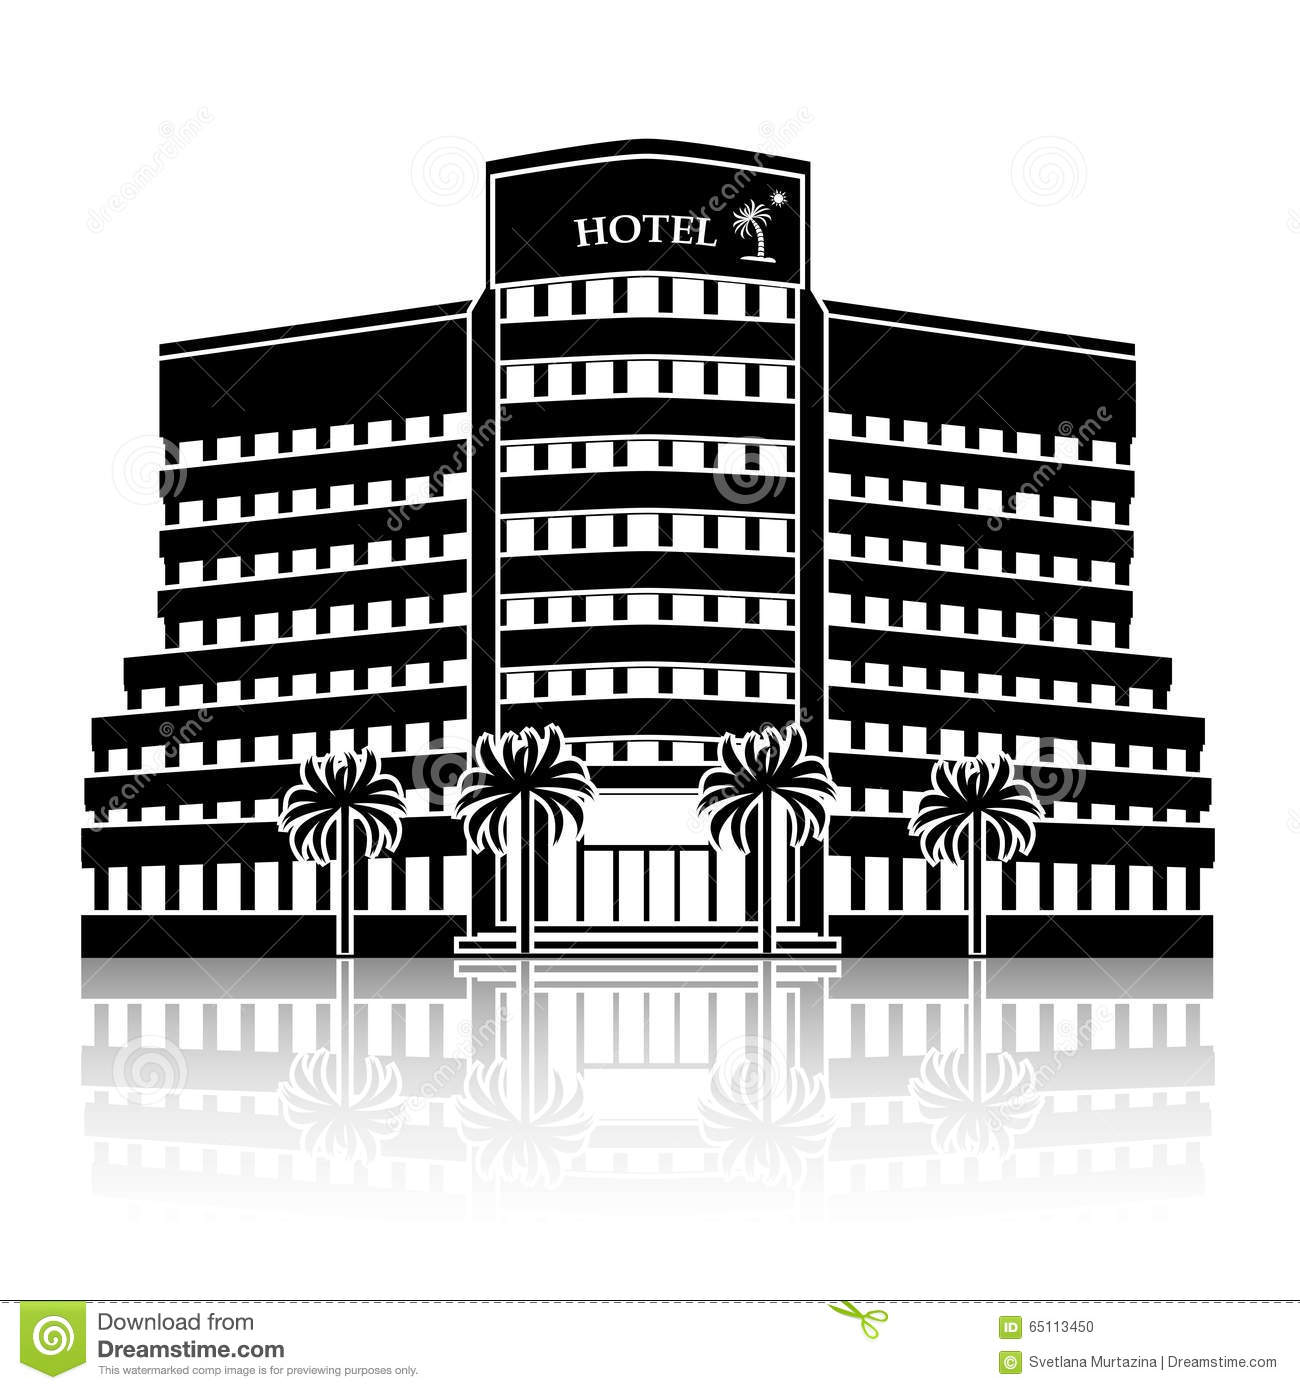 silhouette hotel building palm trees reflection white background 65113450